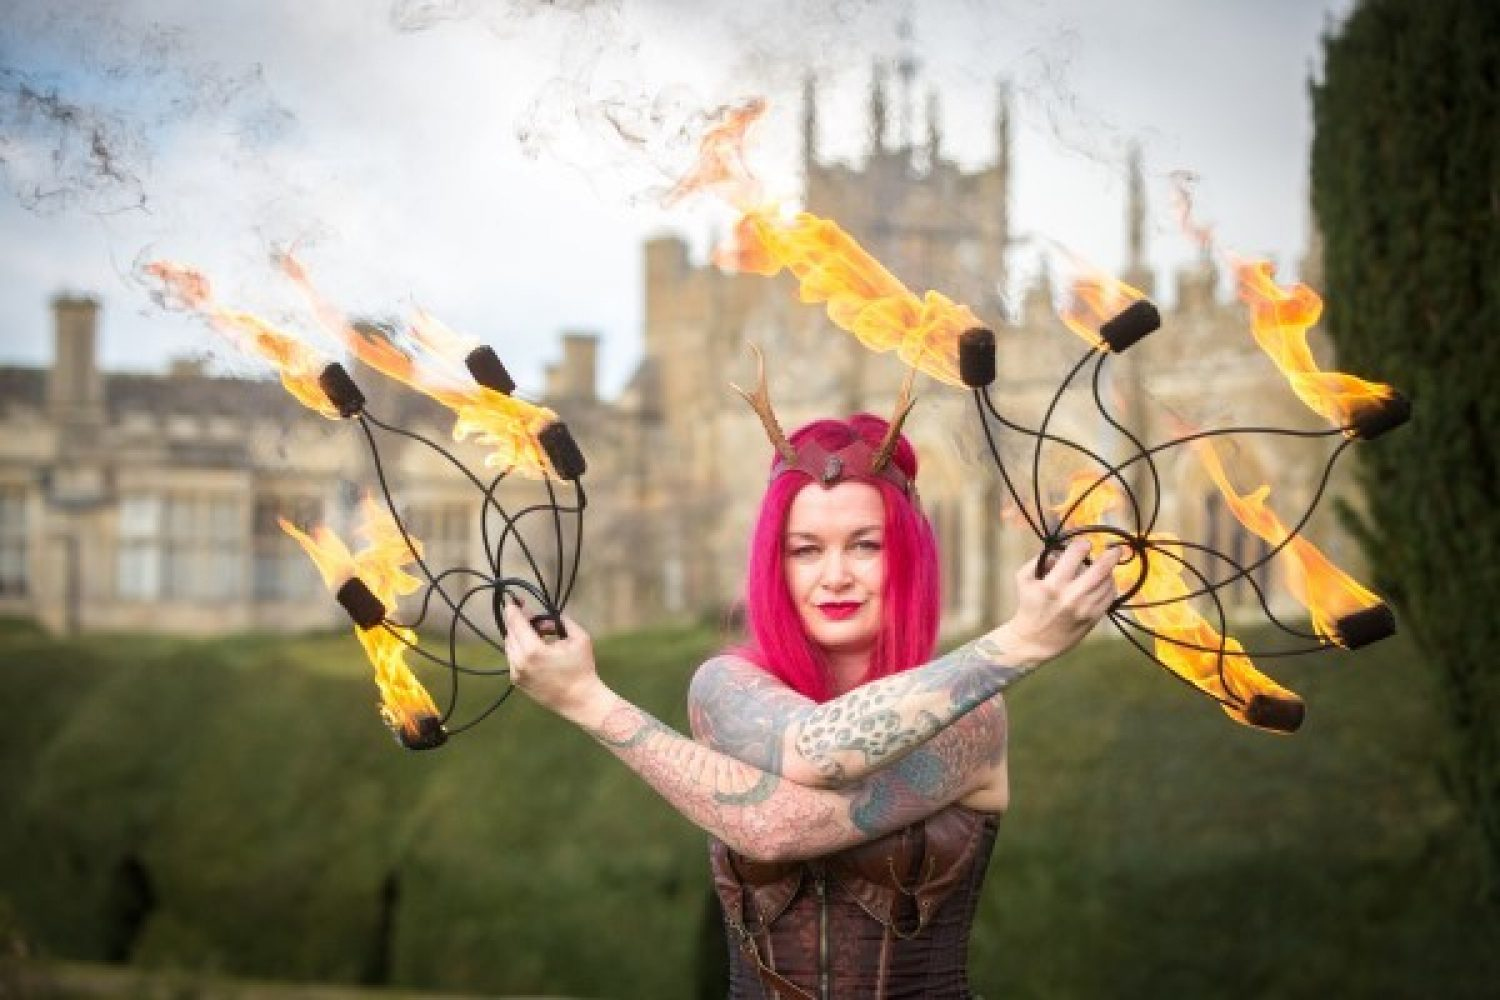 A female performer holds flaming objects